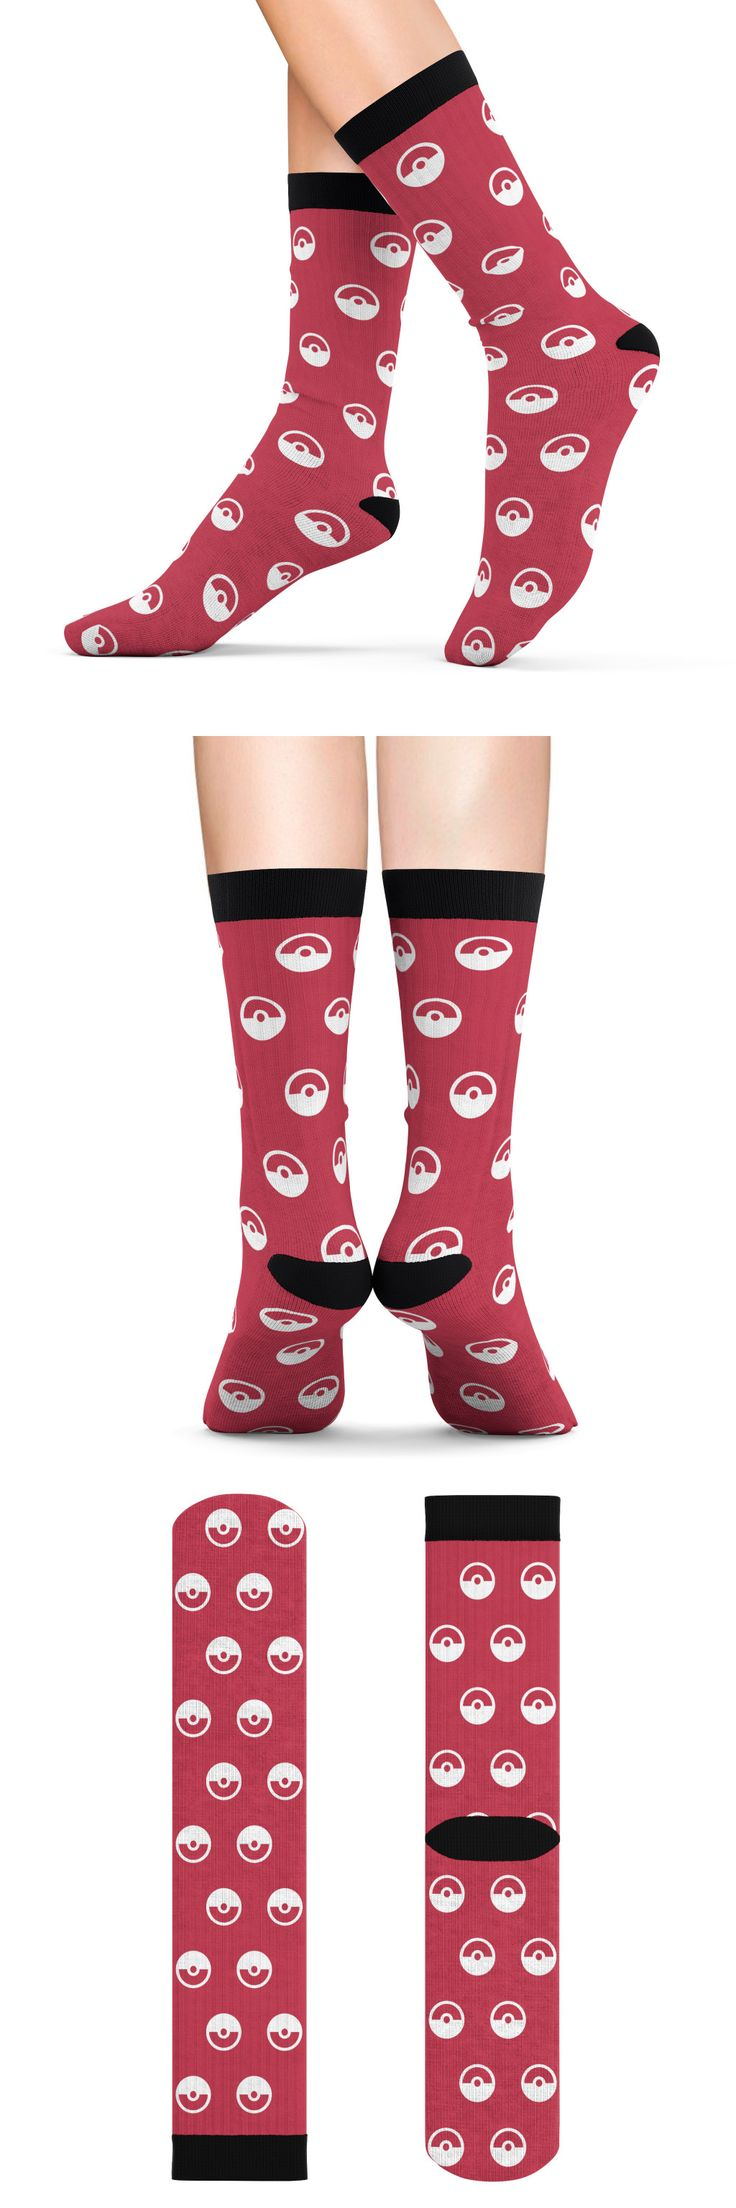 #pokemon #nintendo #pokeball #anime #videogame #socks #trinketgeek